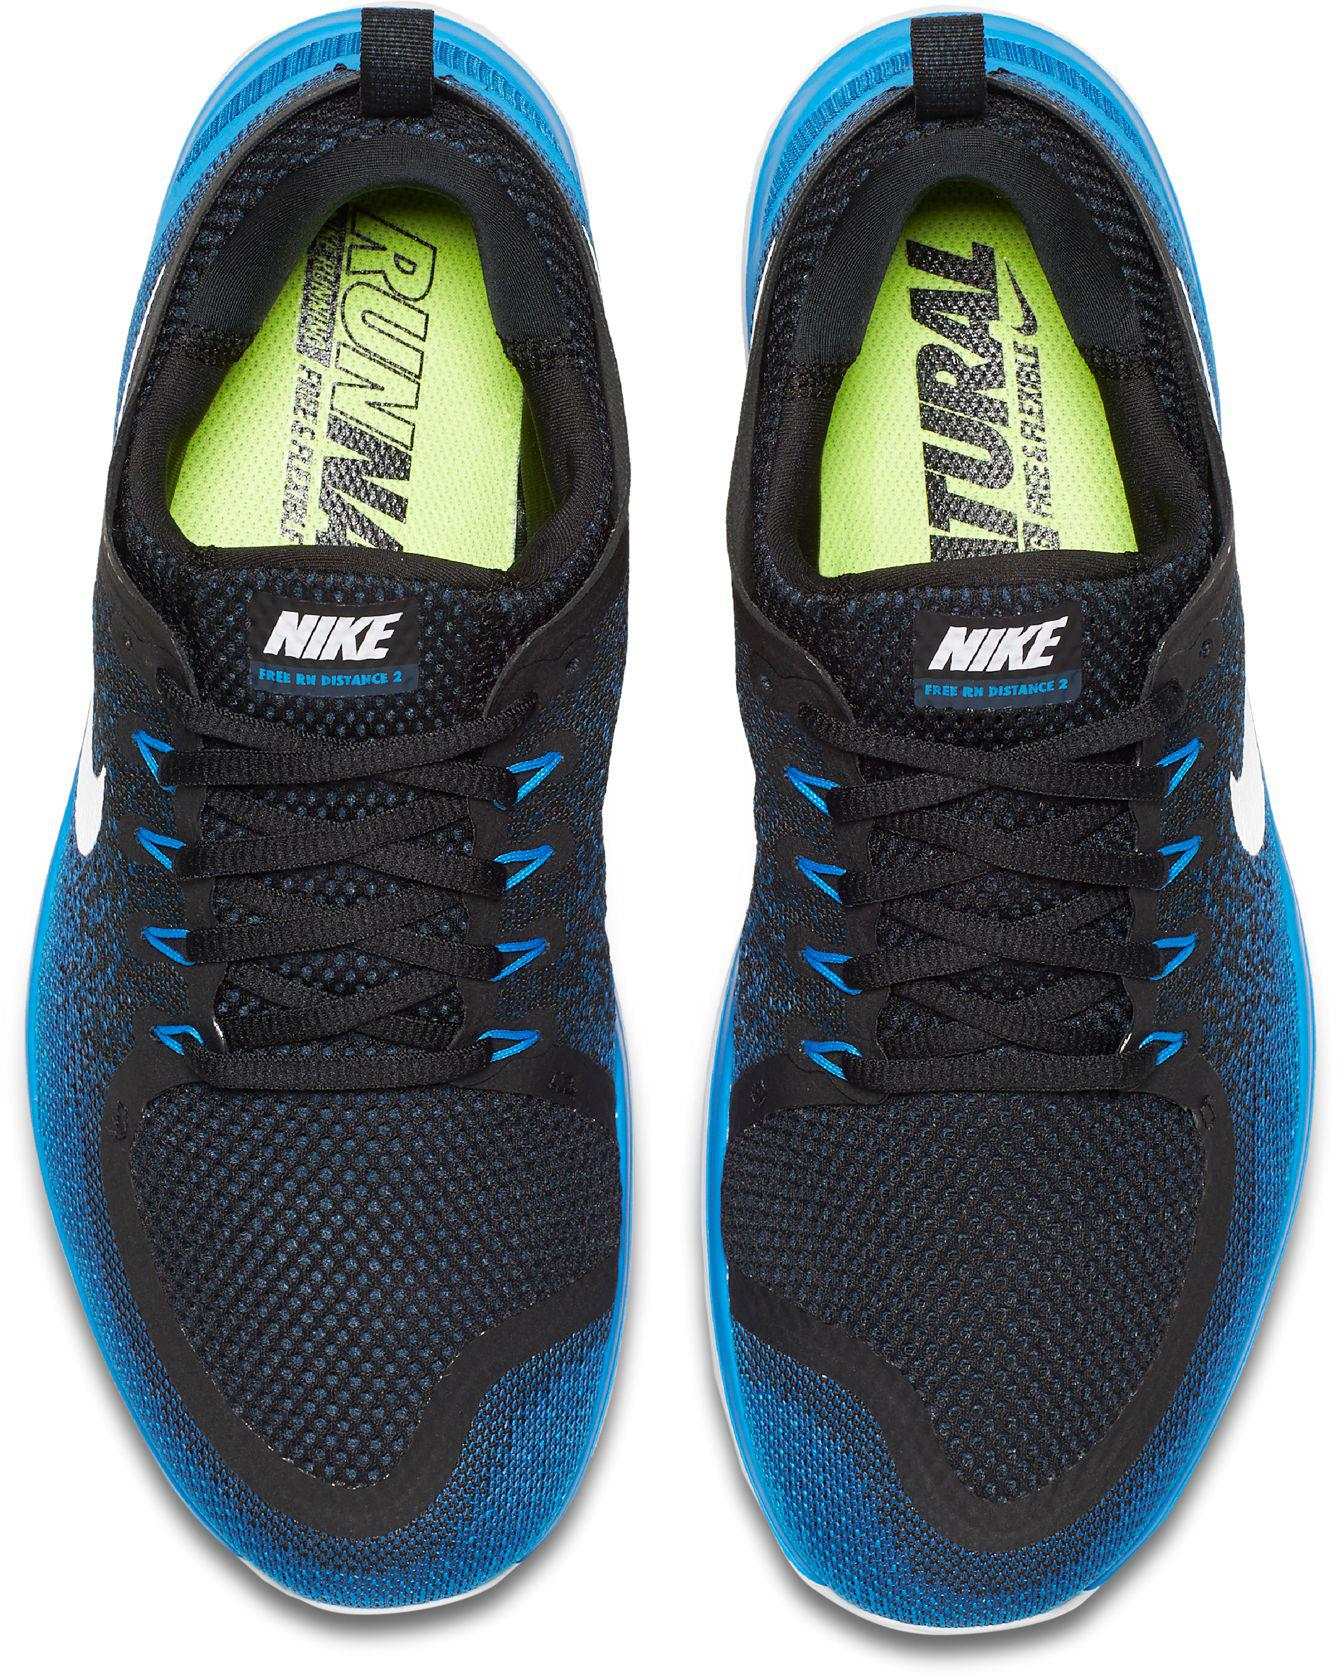 4917441c3f28 Lyst - Nike Free Rn Distance 2 Running Shoes in Blue for Men